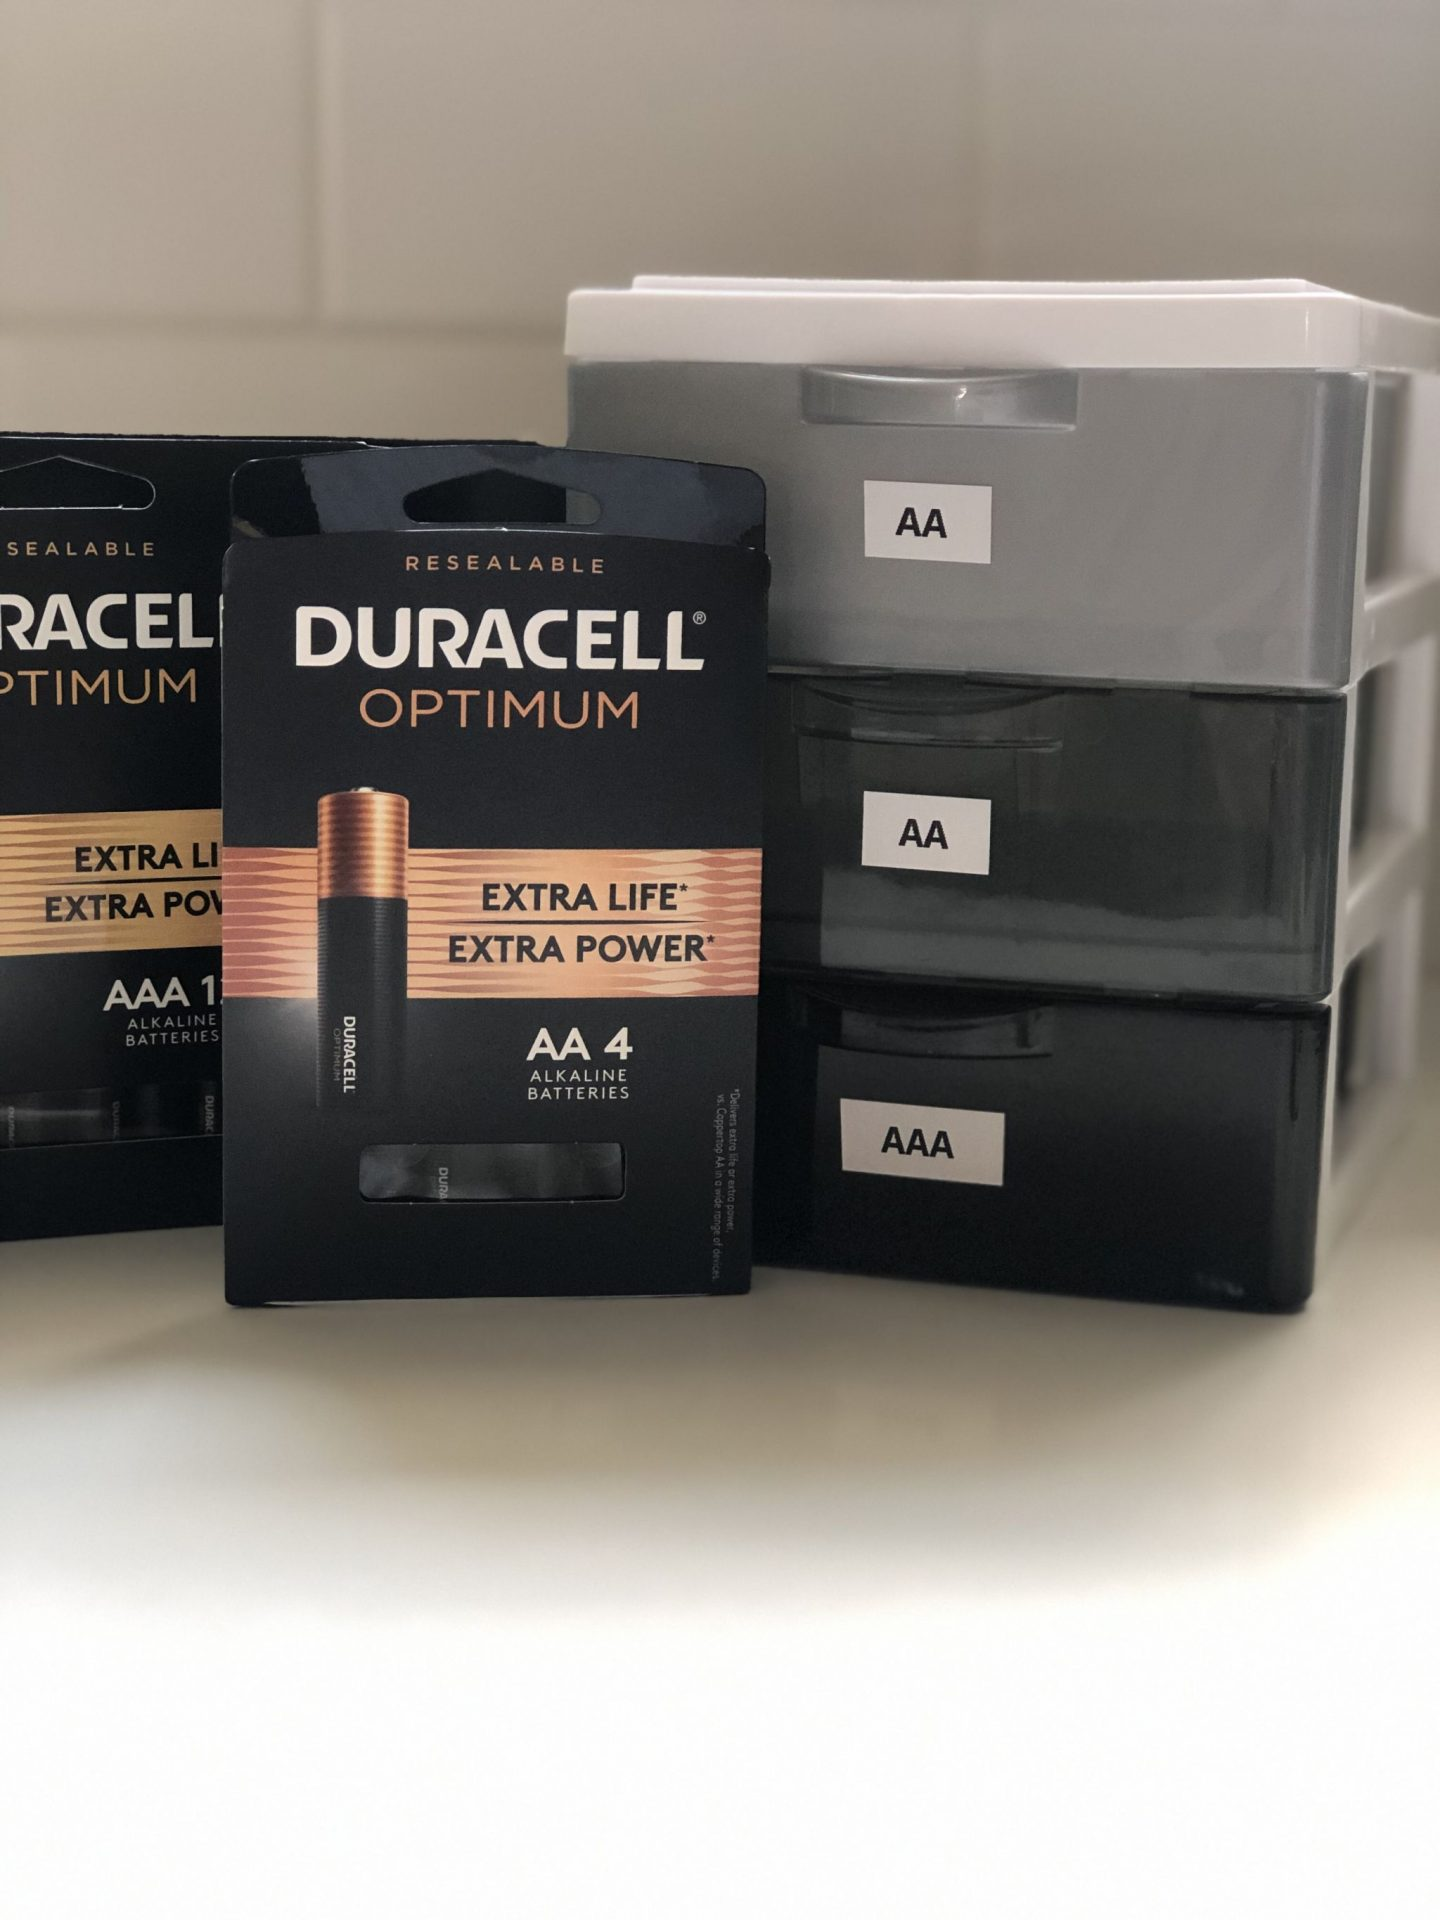 NC blogger Rebecca Lately shares a tip for battery organization with Duracell Optimum. She has a simple solution to keep all your batteries organized.